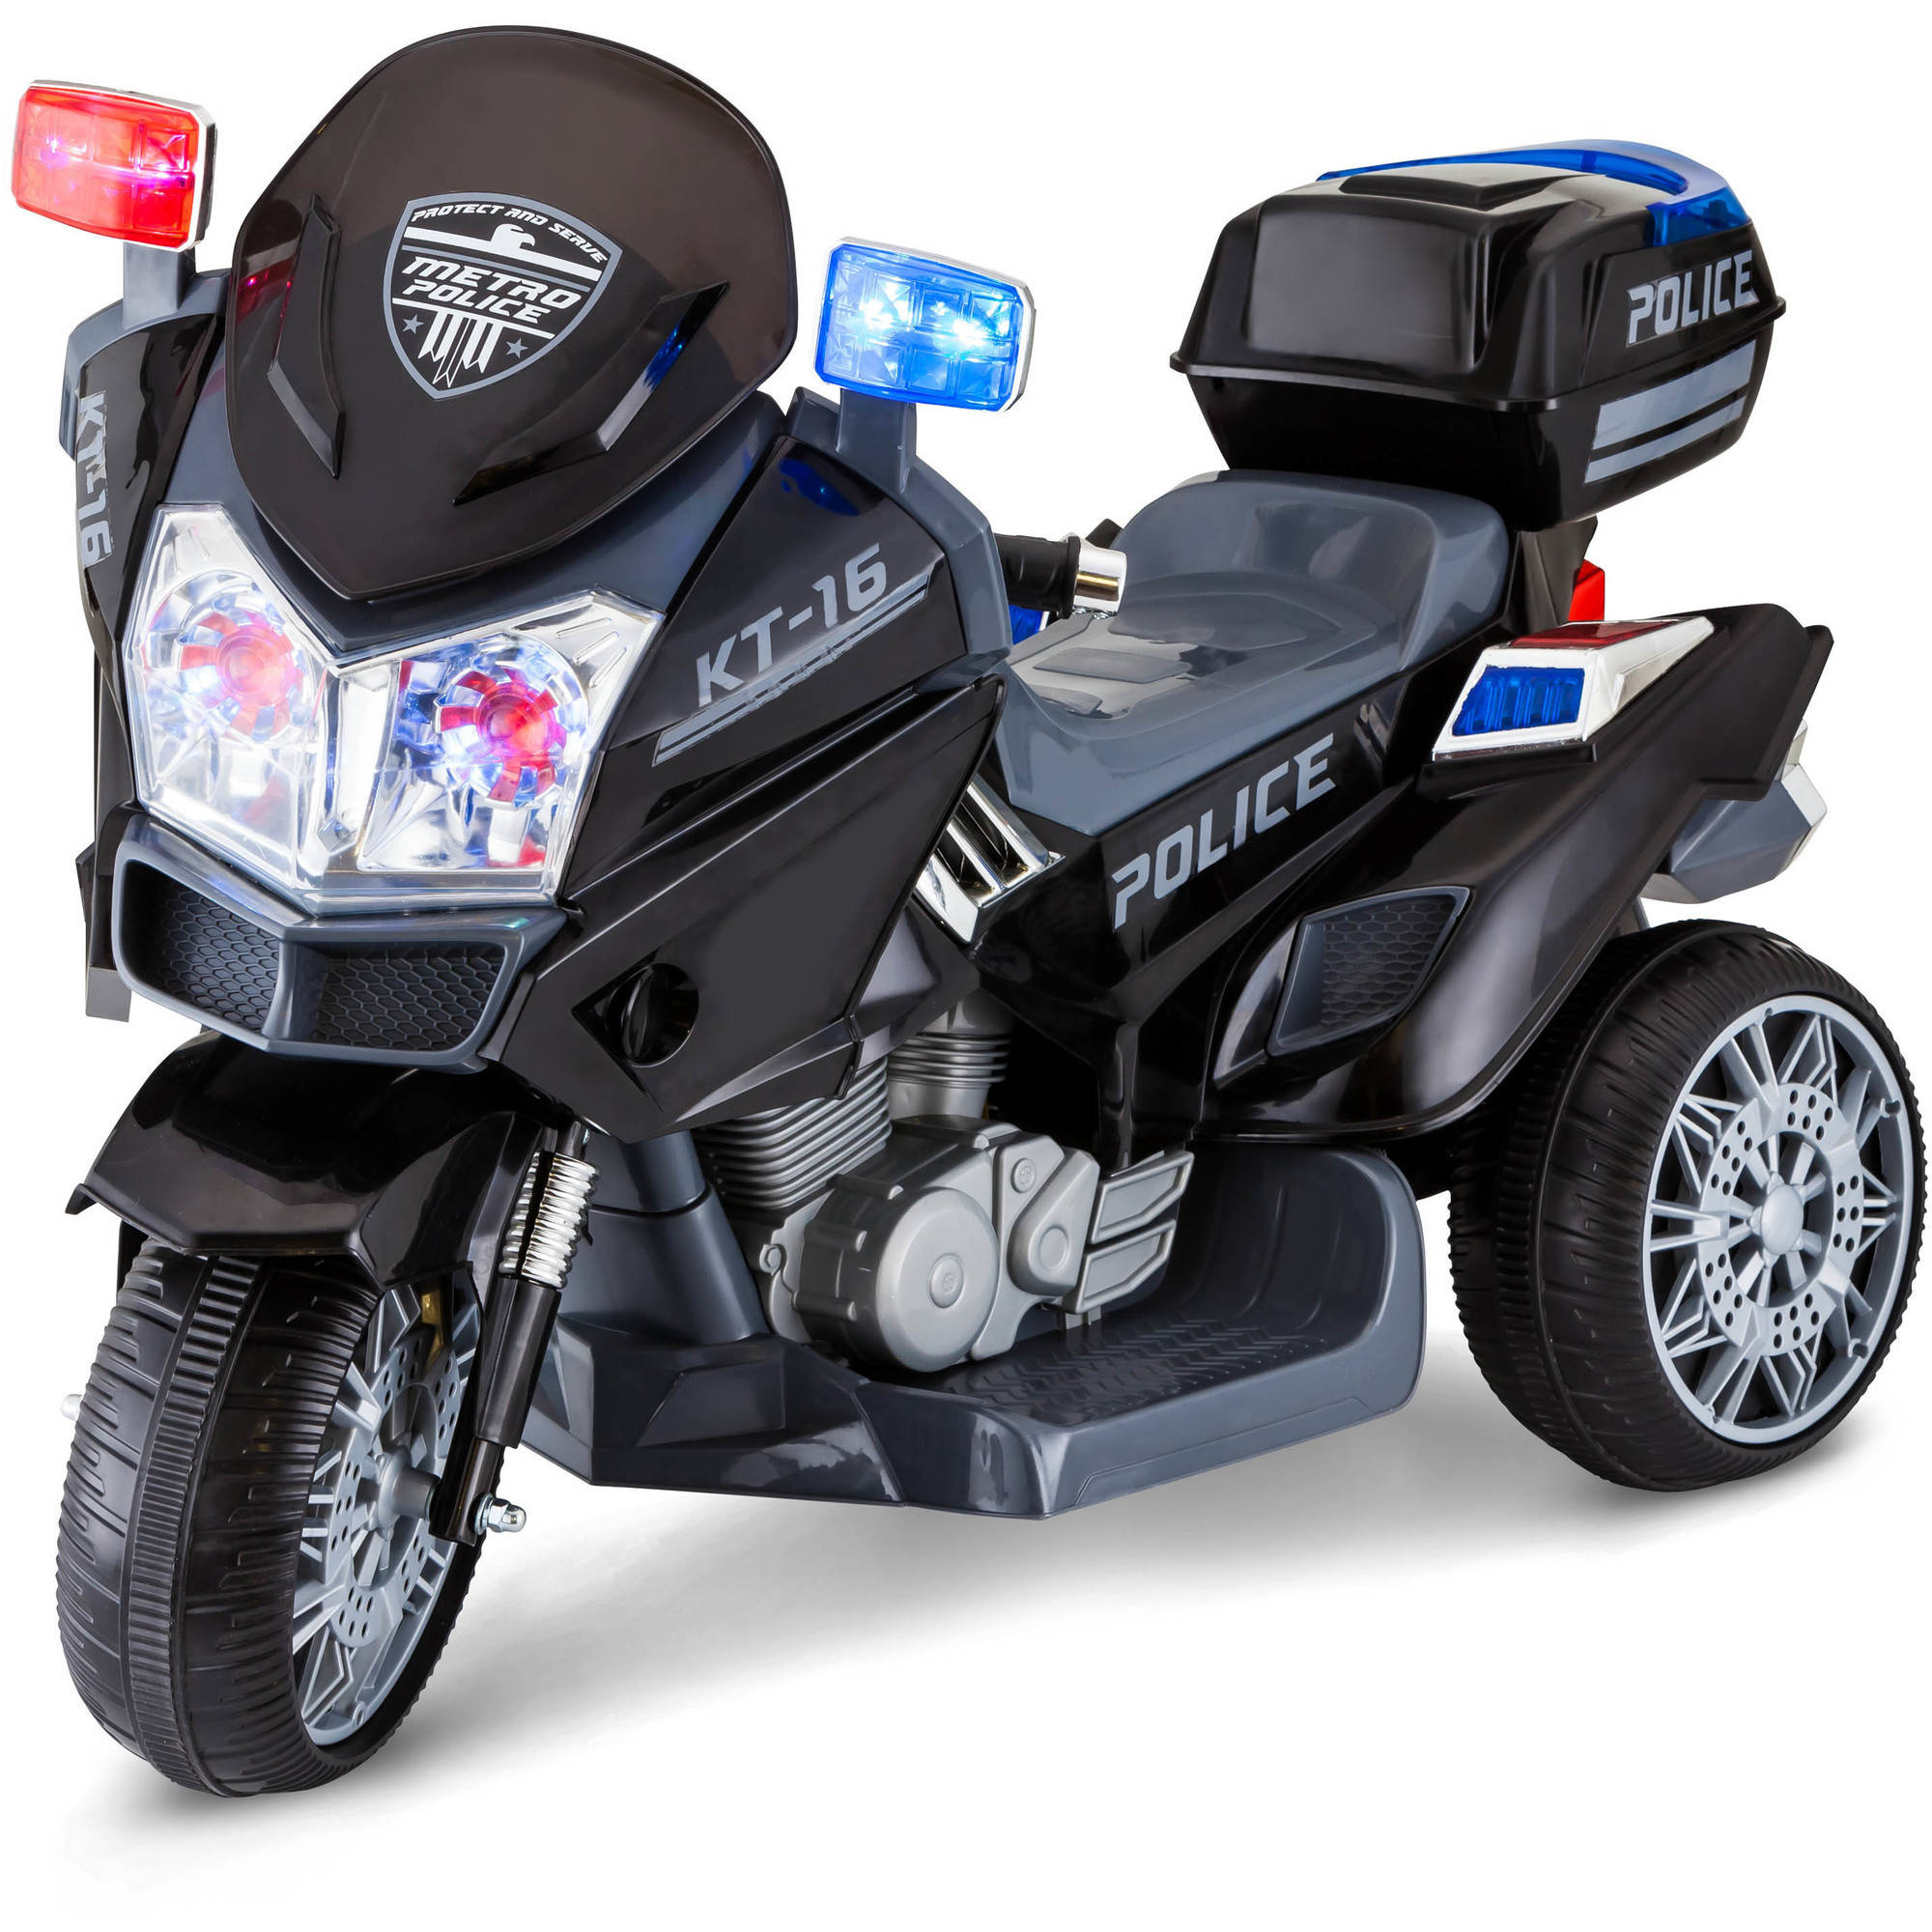 6V Police Trike Ride-On by Pacific Cycle